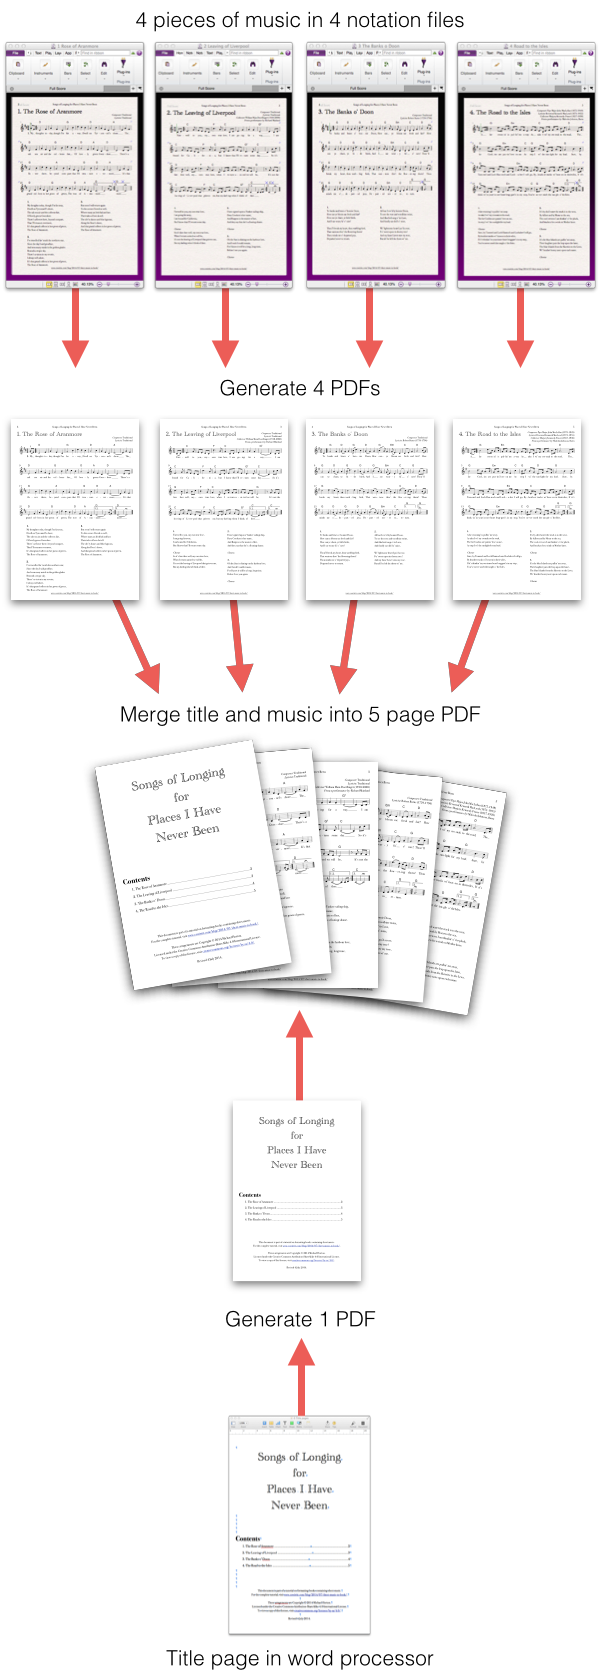 Step 1: Write 4 pieces of music in notation editor, and title page in word processor.  Step 2: Generate 4 music PDFs and 1 title page PDF.  Step 3: Merge title and music into 5 page PDF.